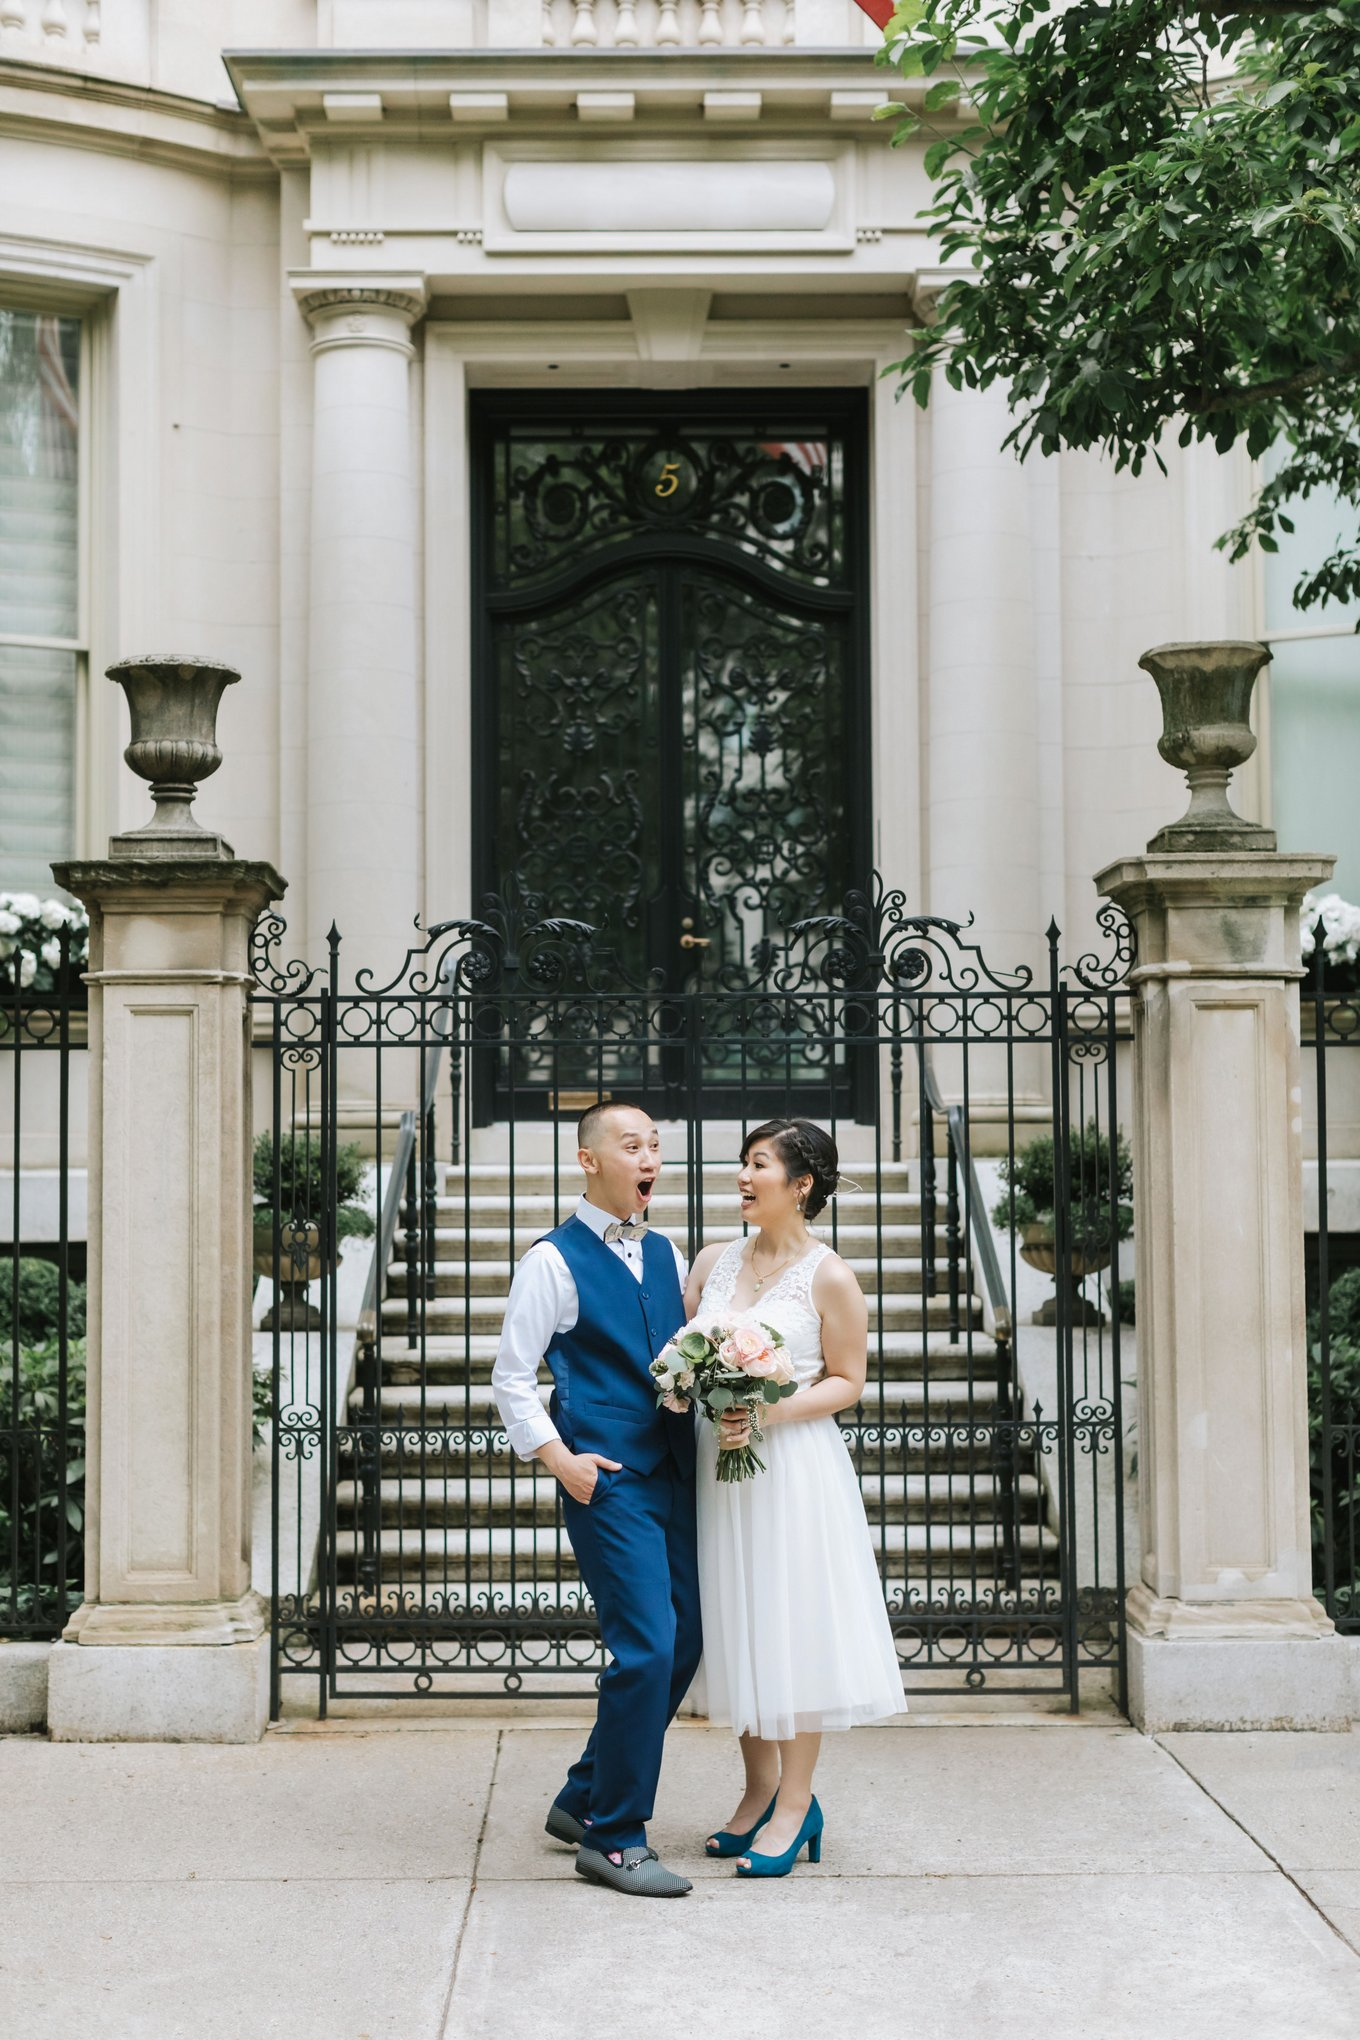 Boston-City-Hall-Dog-Wedding-Elopement-Public-Garden-13.jpg